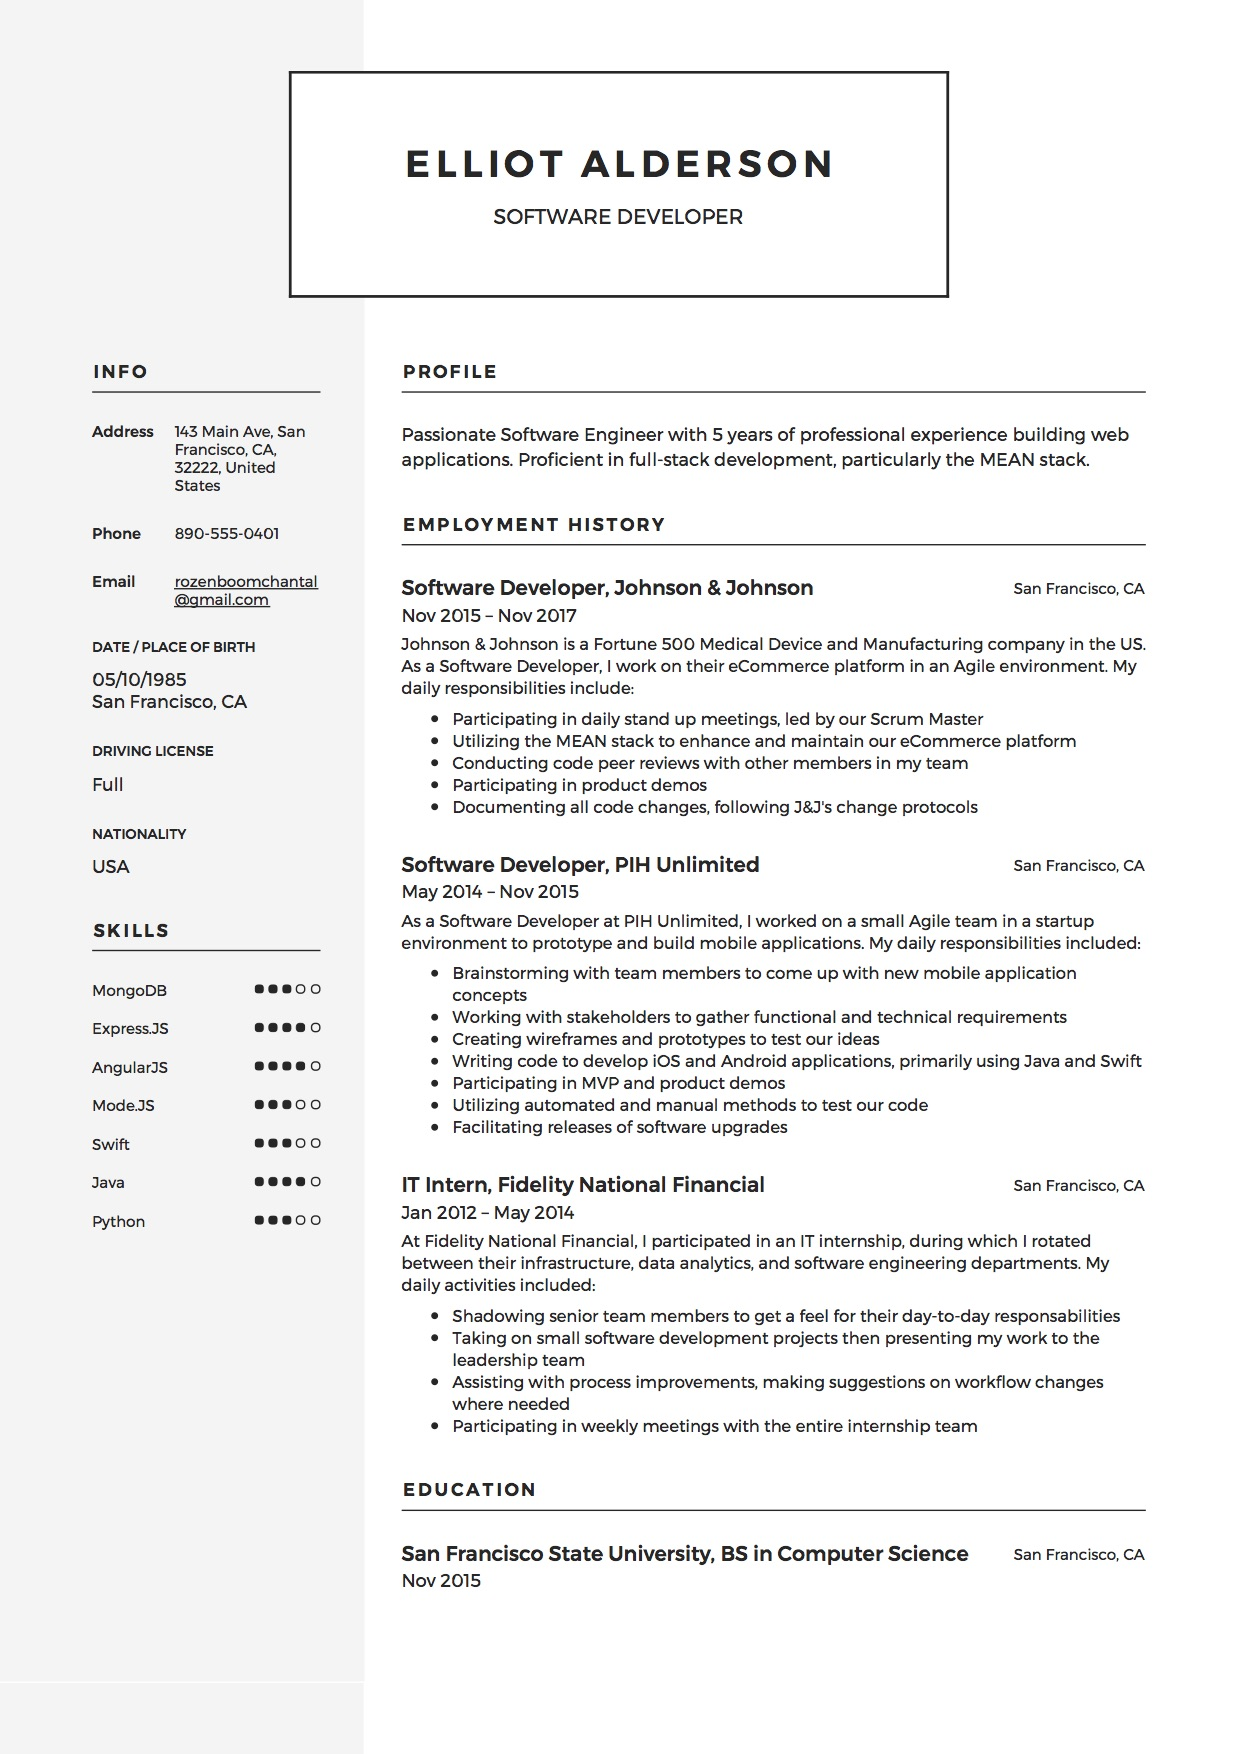 software developer resume4